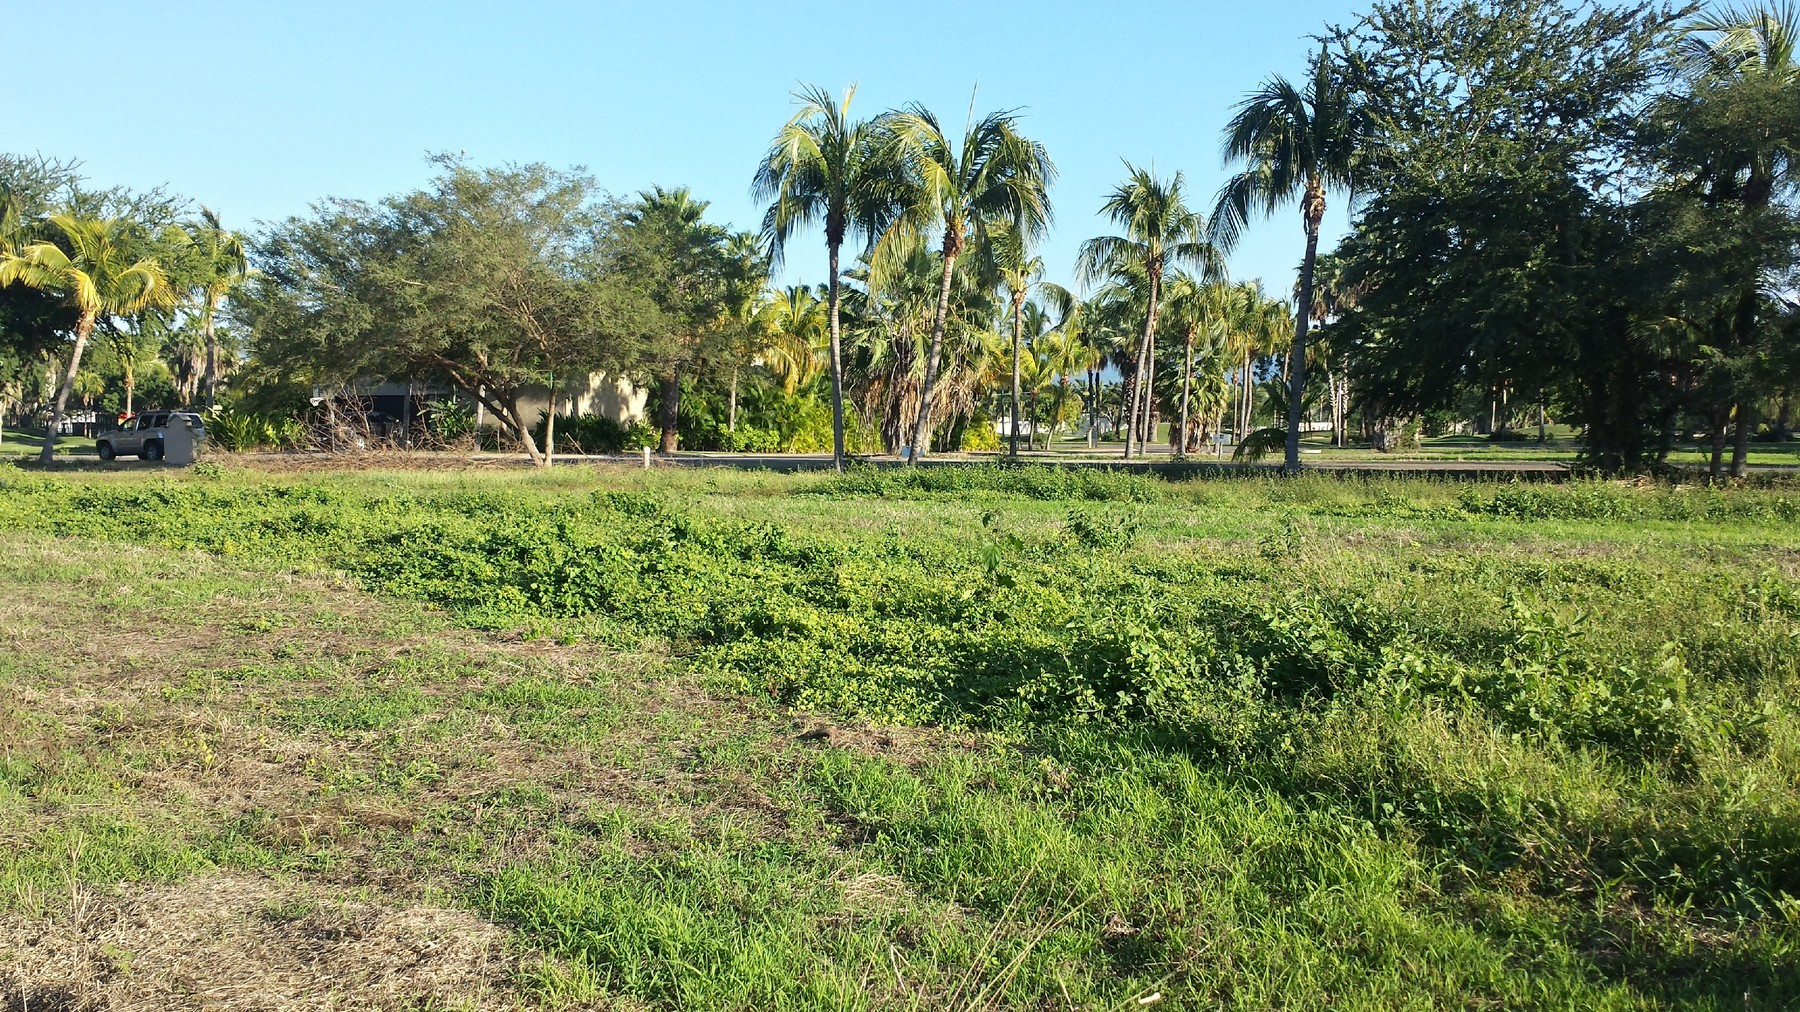 Additional photo for property listing at Residential Lot, 18 Isla Guacamayas, El Tigre Golf Course, Nuevo Vallarta Lote 18 Isla Guacamaya El Tigre Nuevo Vallarta, Nayarit 63735 México